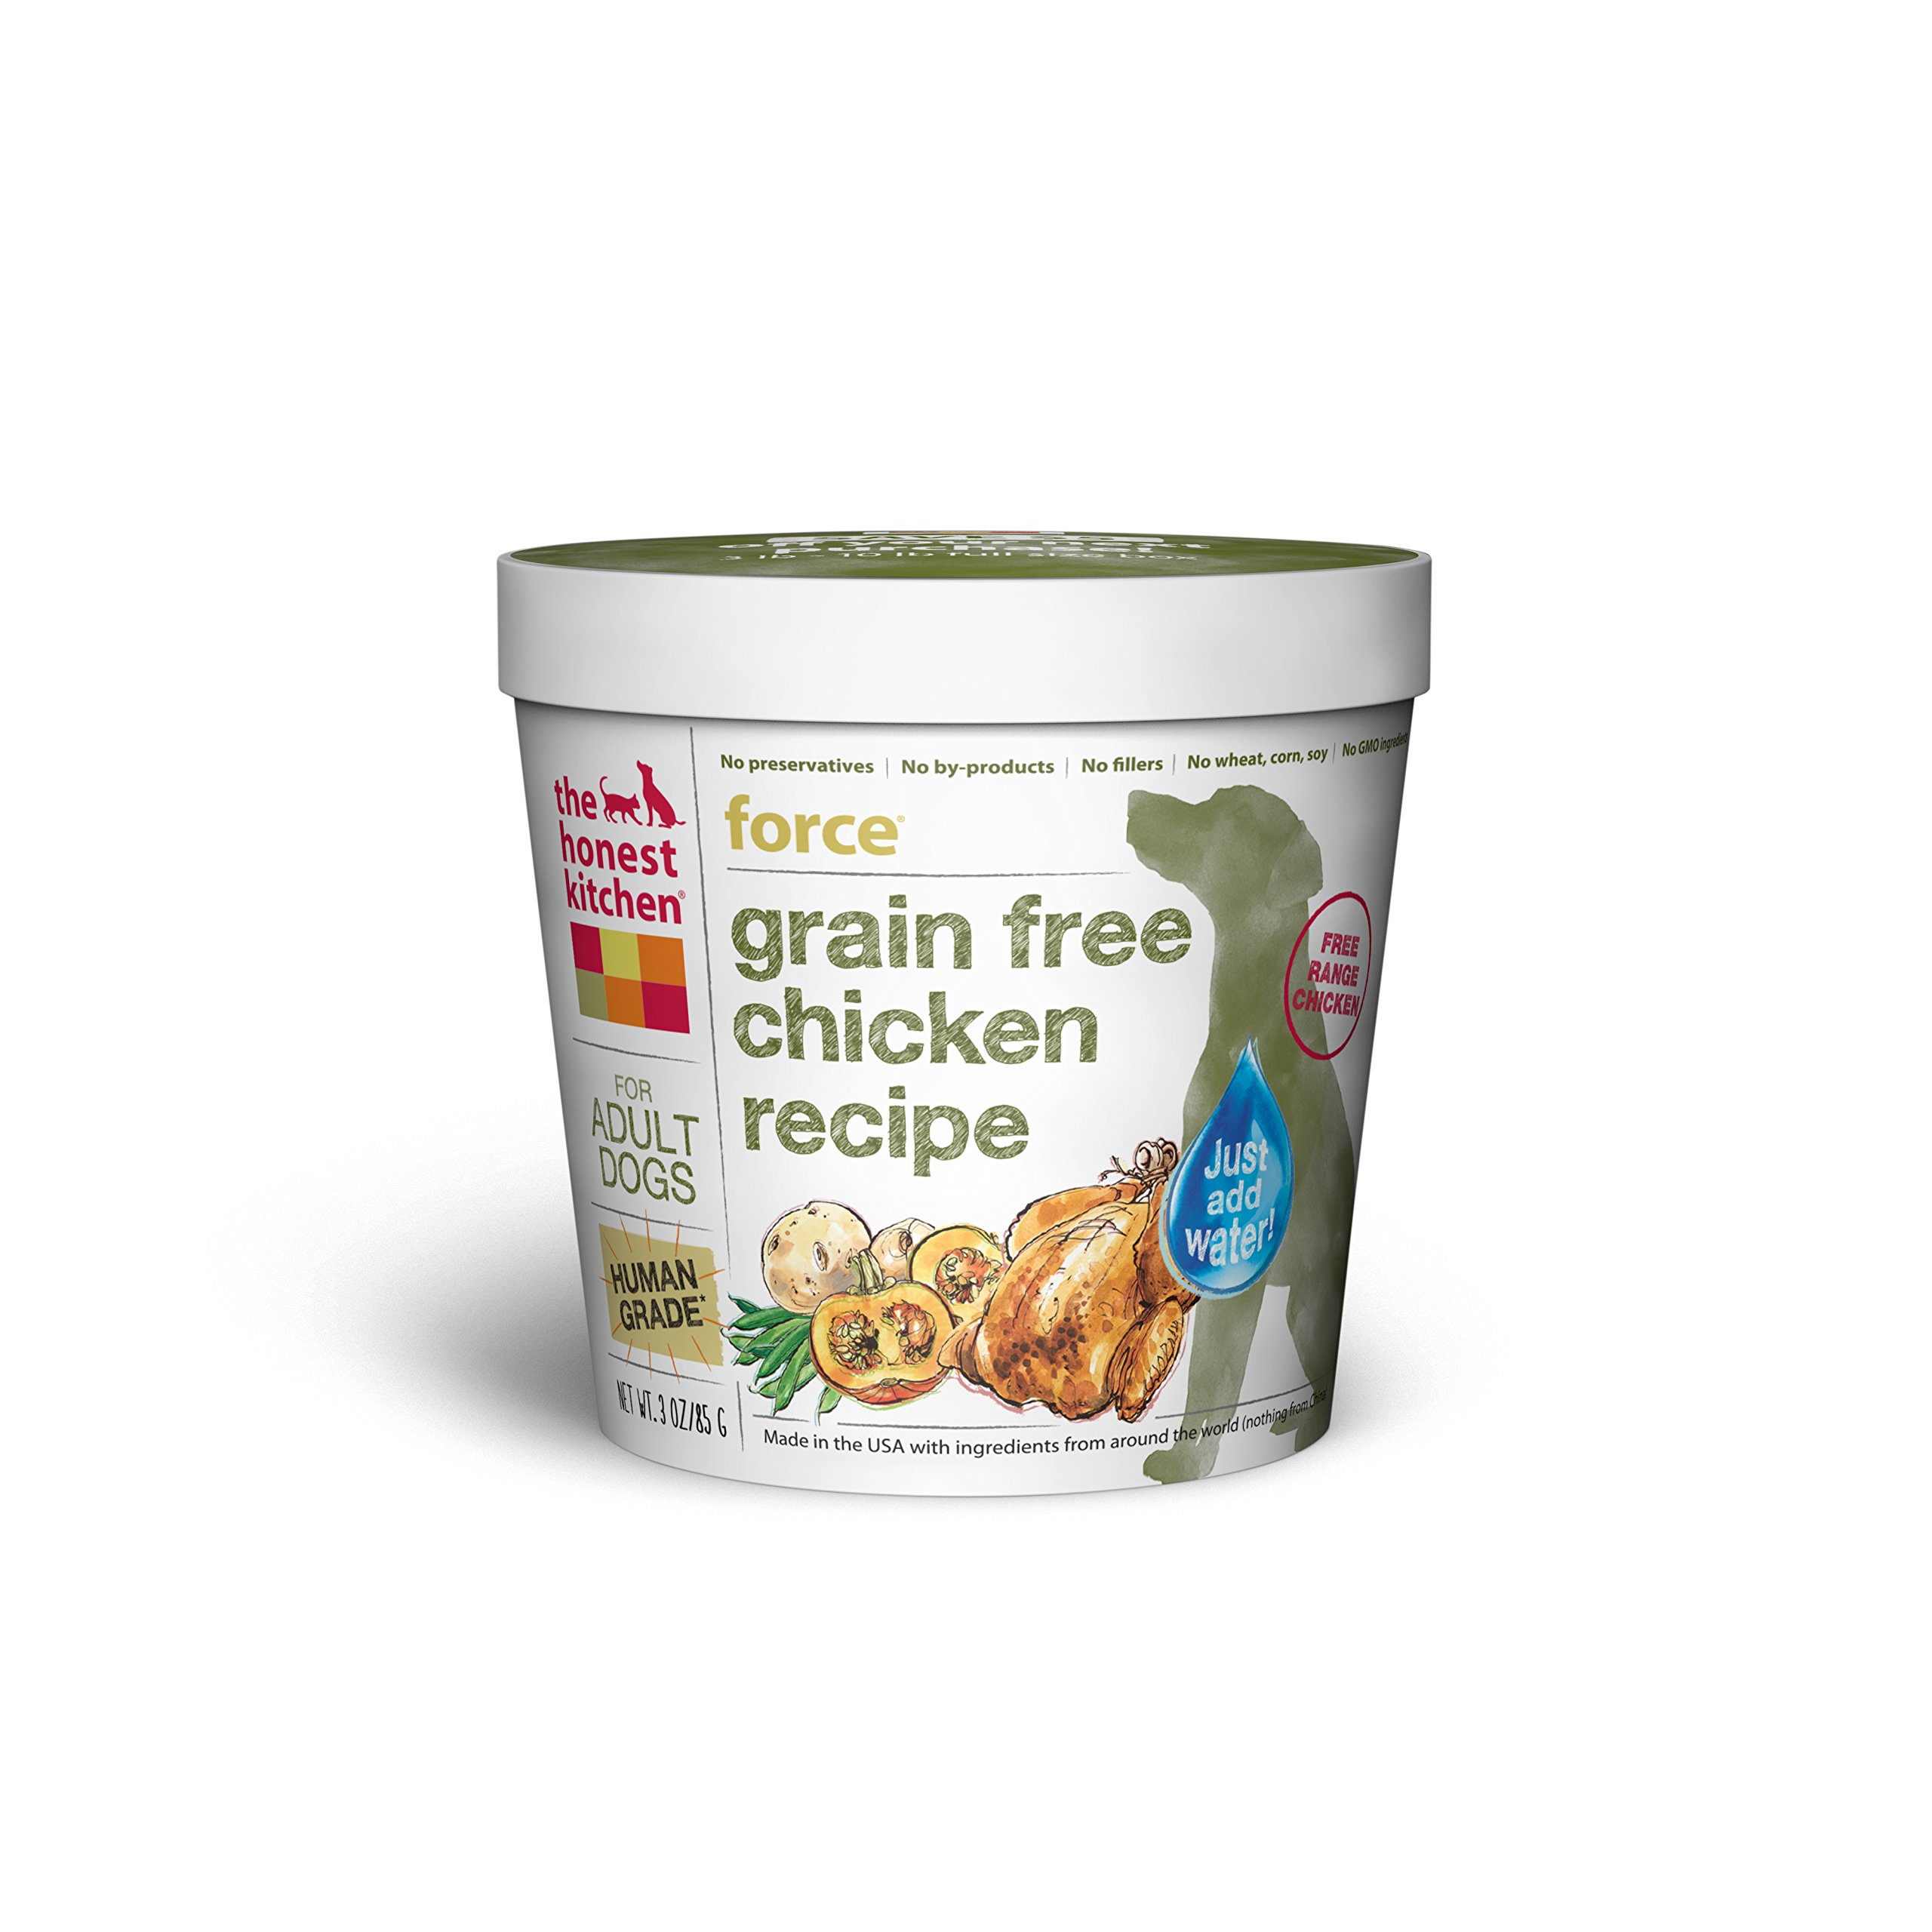 The Honest Kitchen Human Grade Dehydrated Grain Free Chicken Dog Food, Single Serve Cup (Tray of 8) - Force